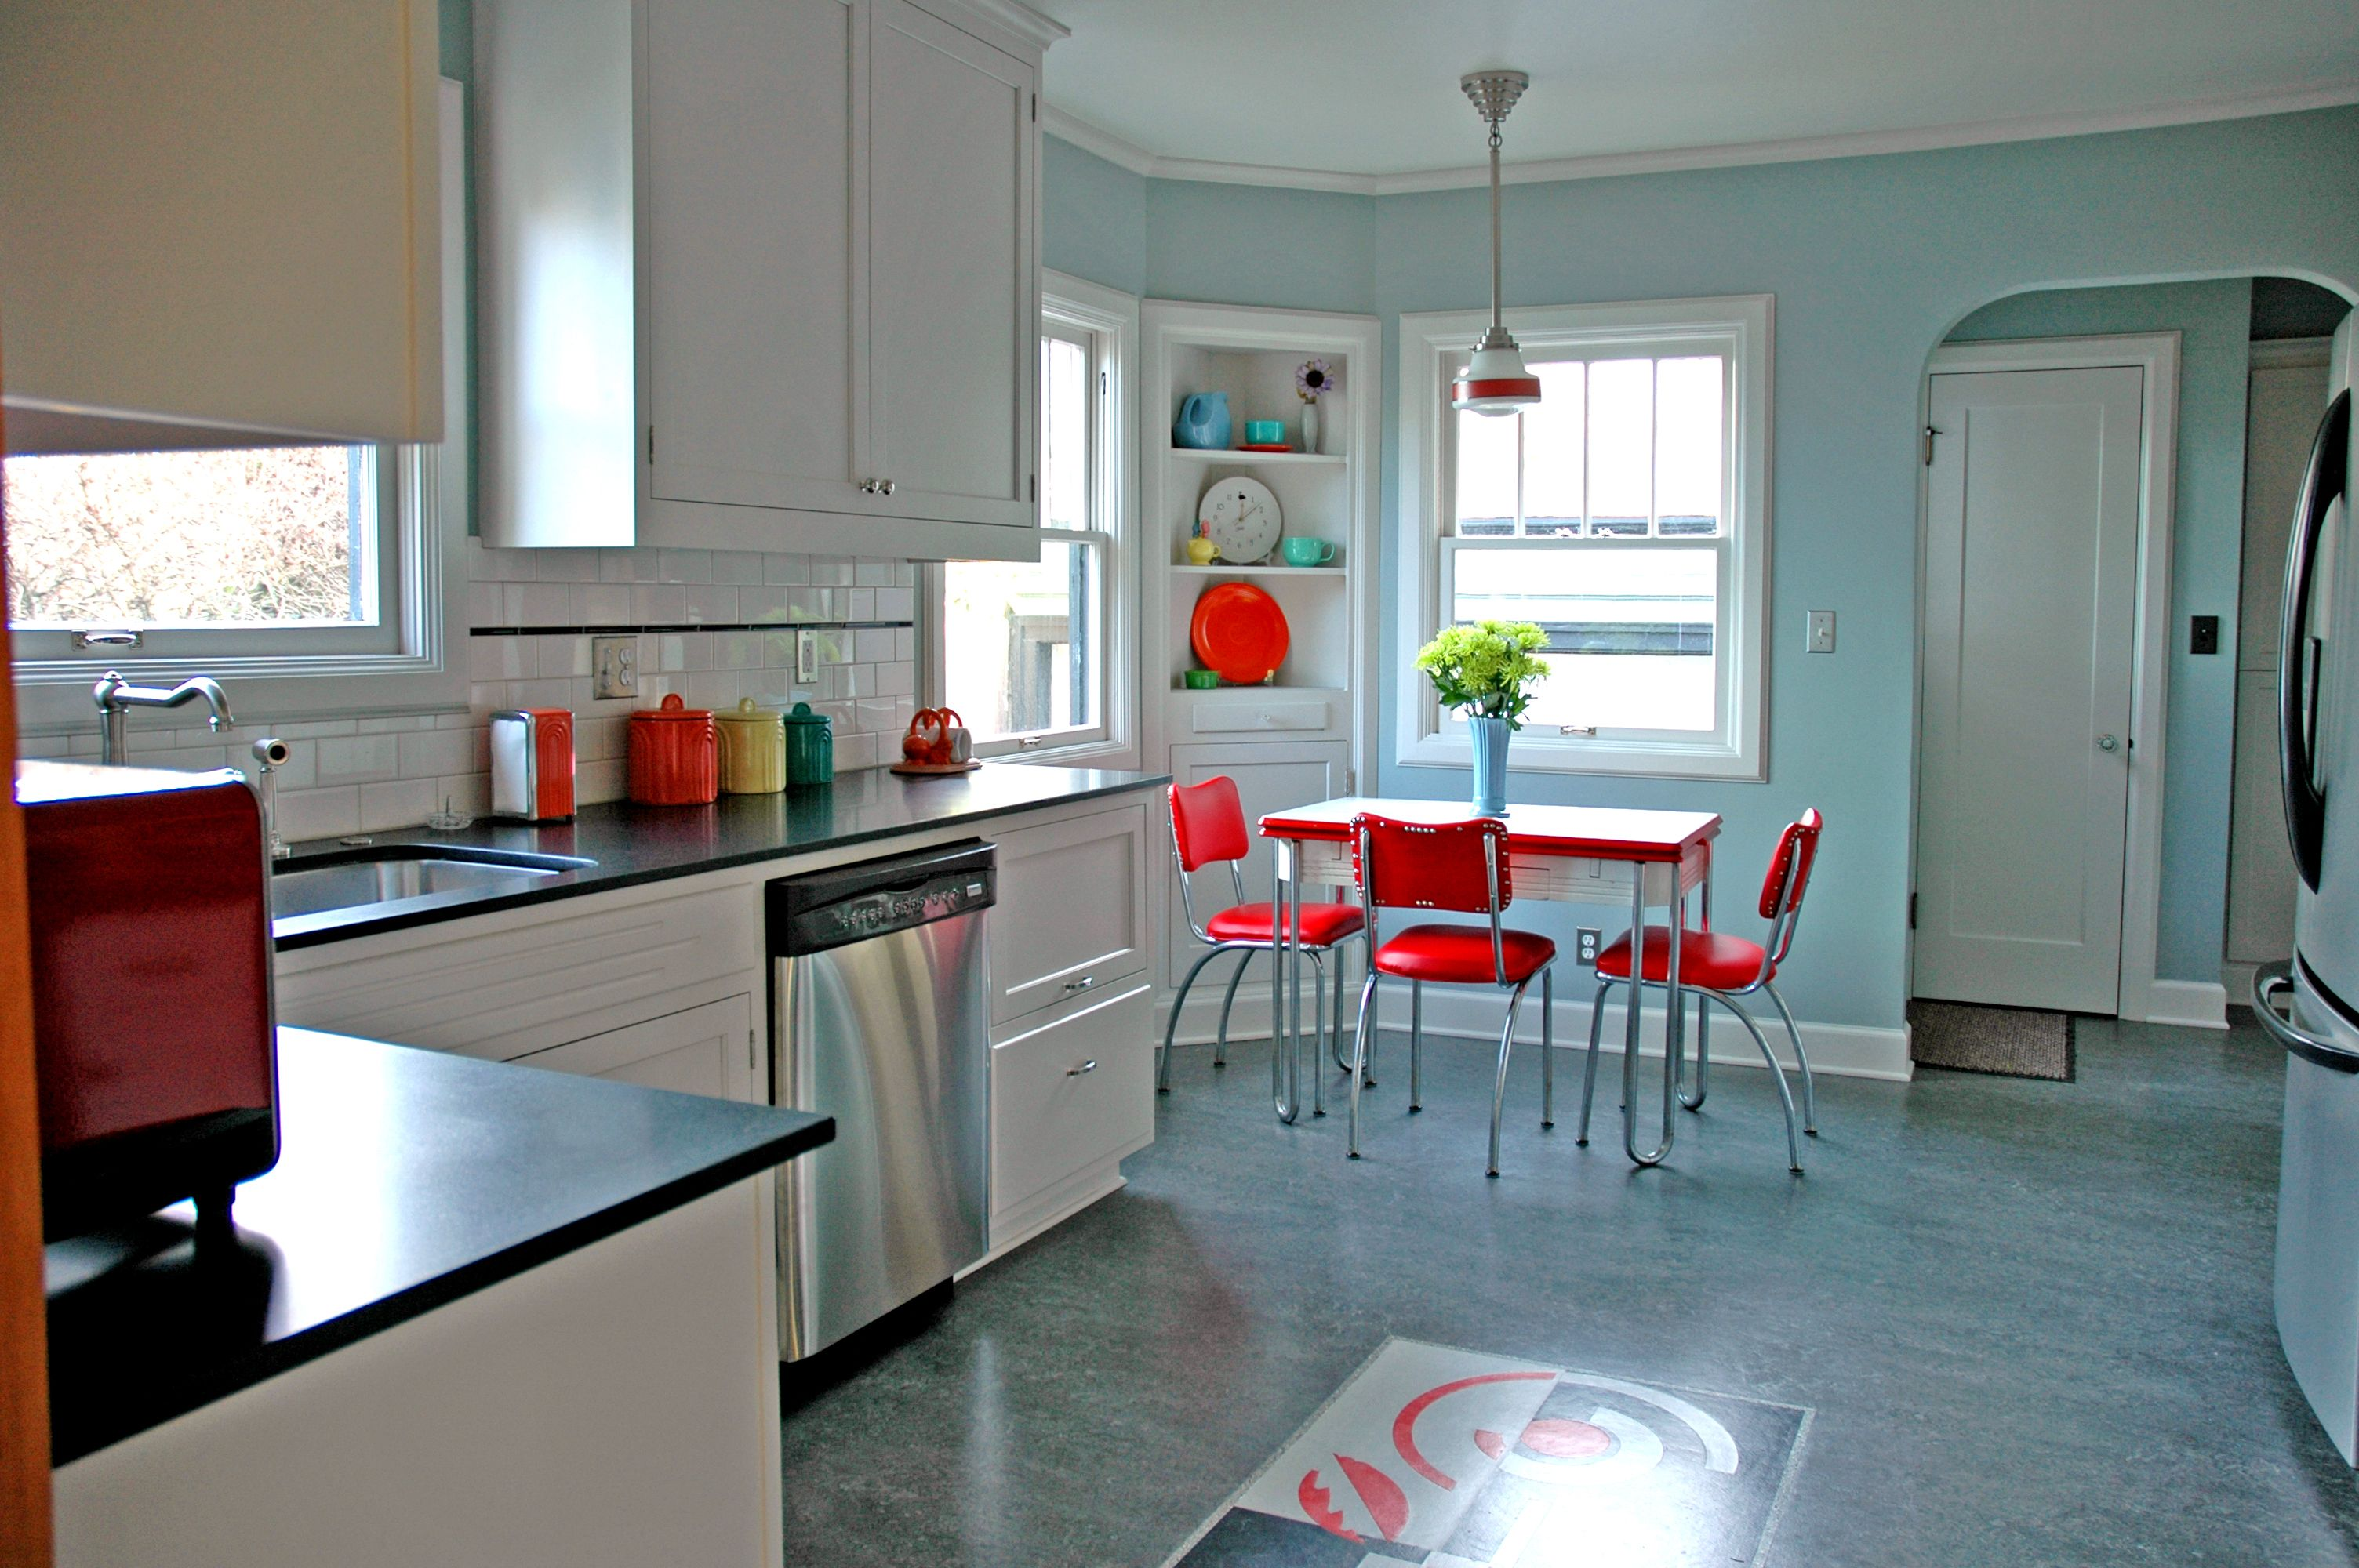 Superb Red Pieces Really Pop In This Kitchen Designed